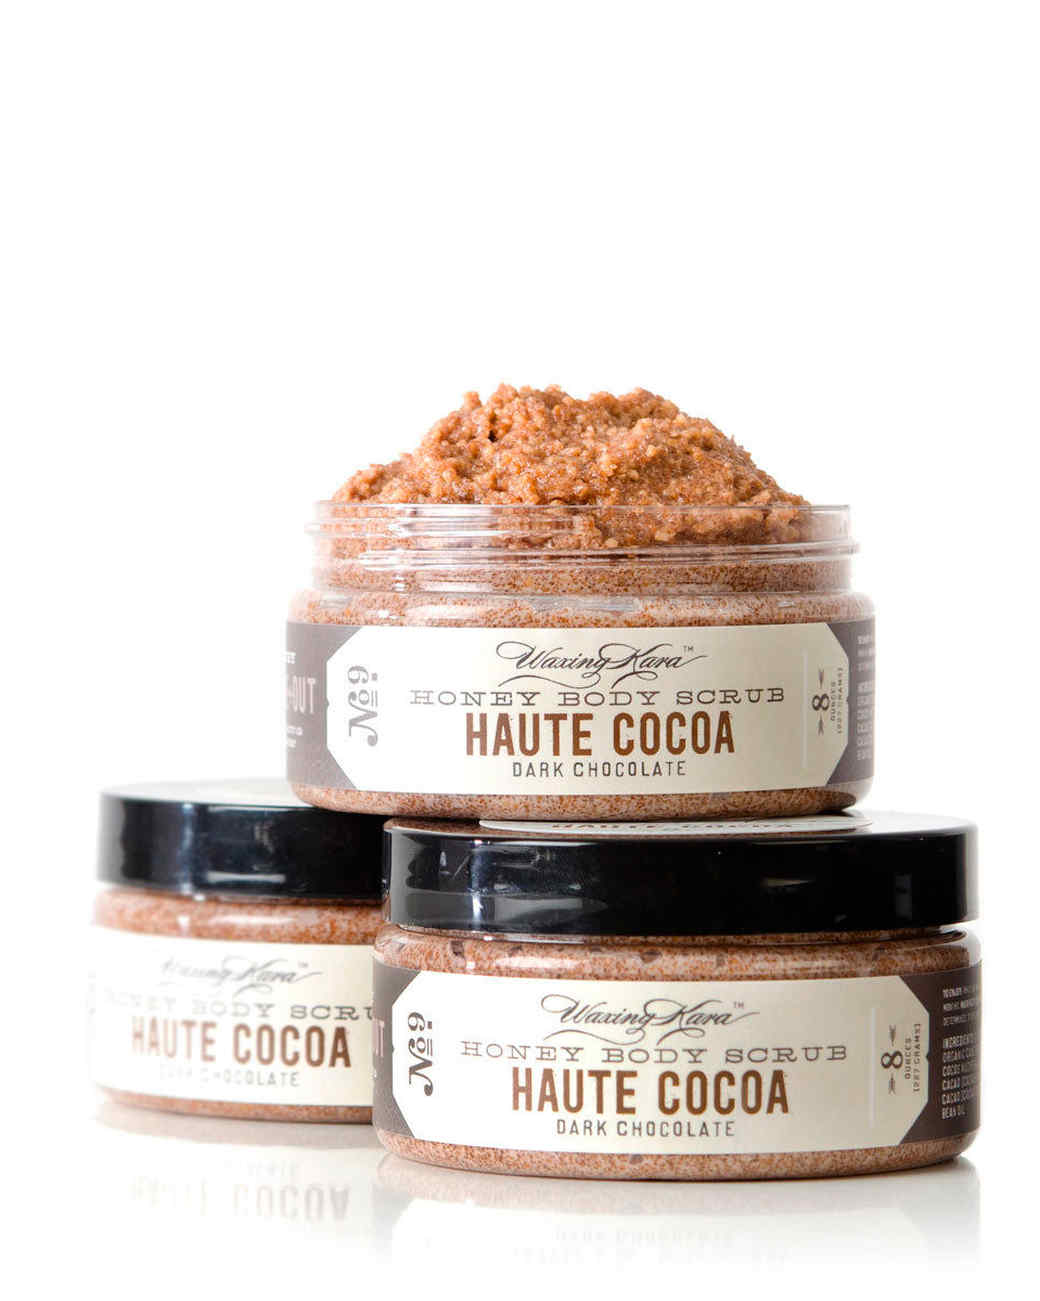 waxing-kara-honey-body-scrub-haute-cocoa-0915.jpg